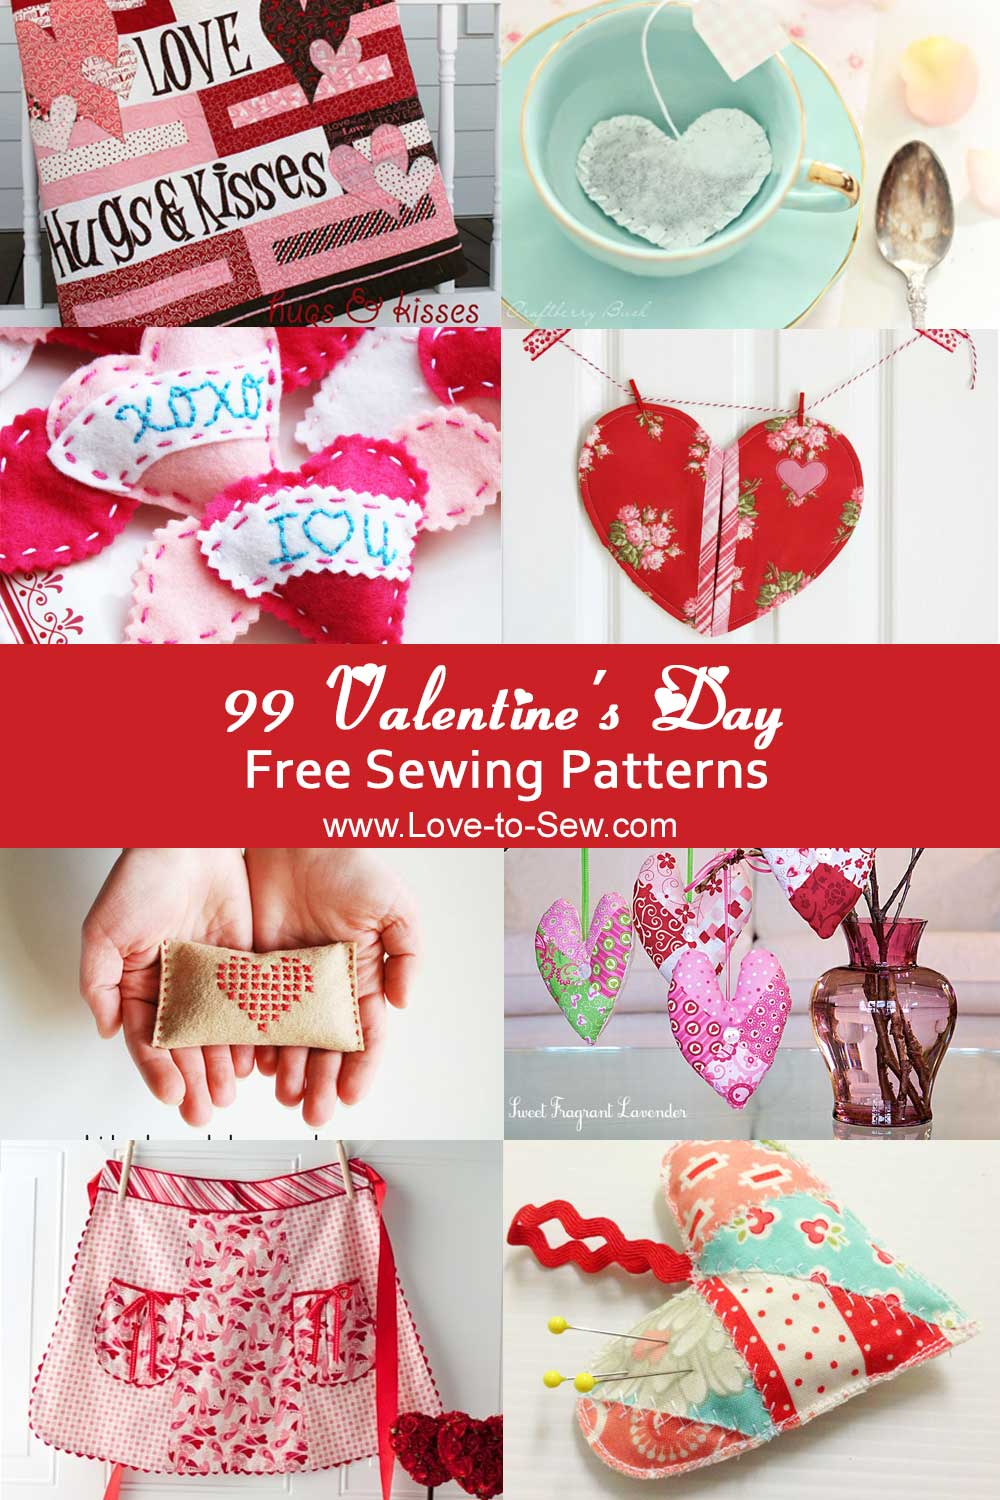 99 Valentine's Day Free Sewing Patterns